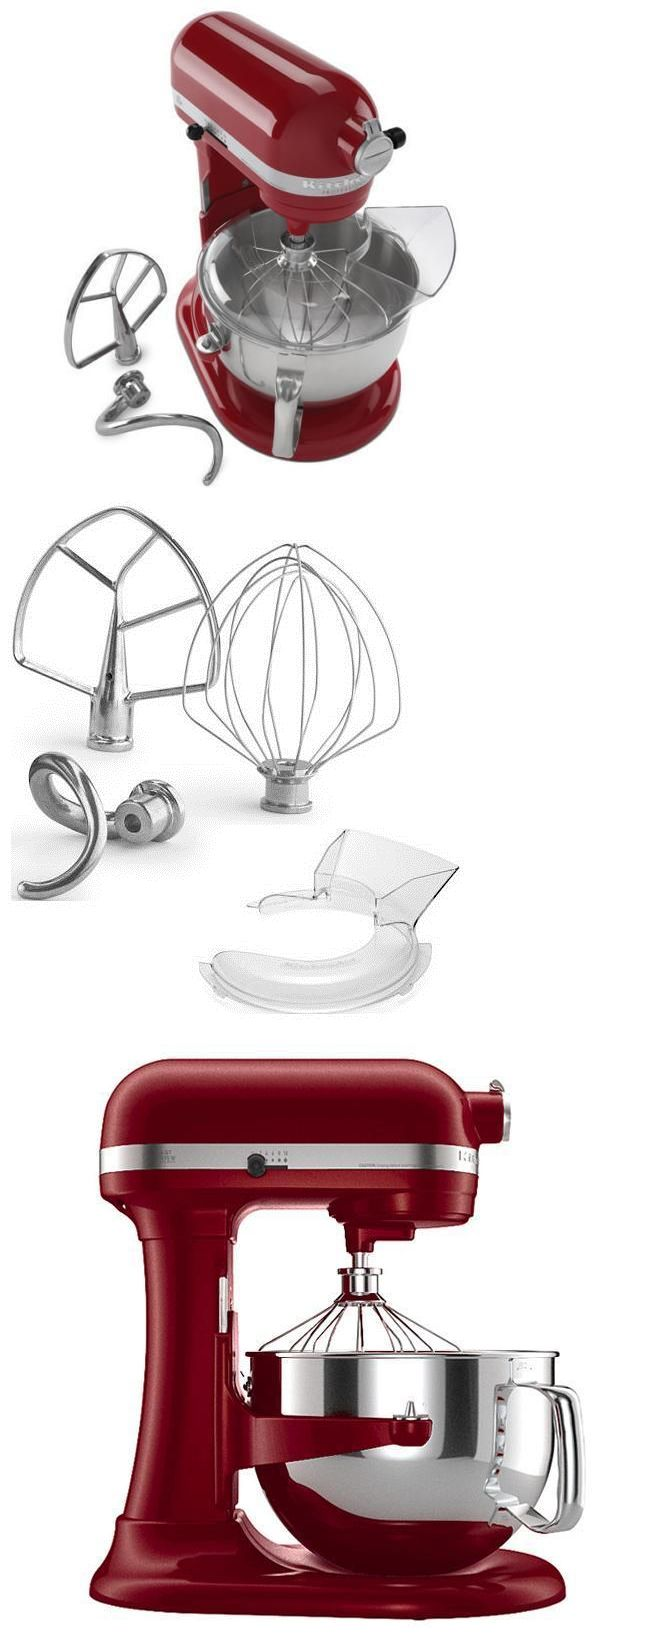 Small Kitchen Appliances: Kitchenaid Professional 600 Stand Mixer~6 Quart~Empire Red~Steel Gear~New-No Box -> BUY IT NOW ONLY: $339.95 on eBay!